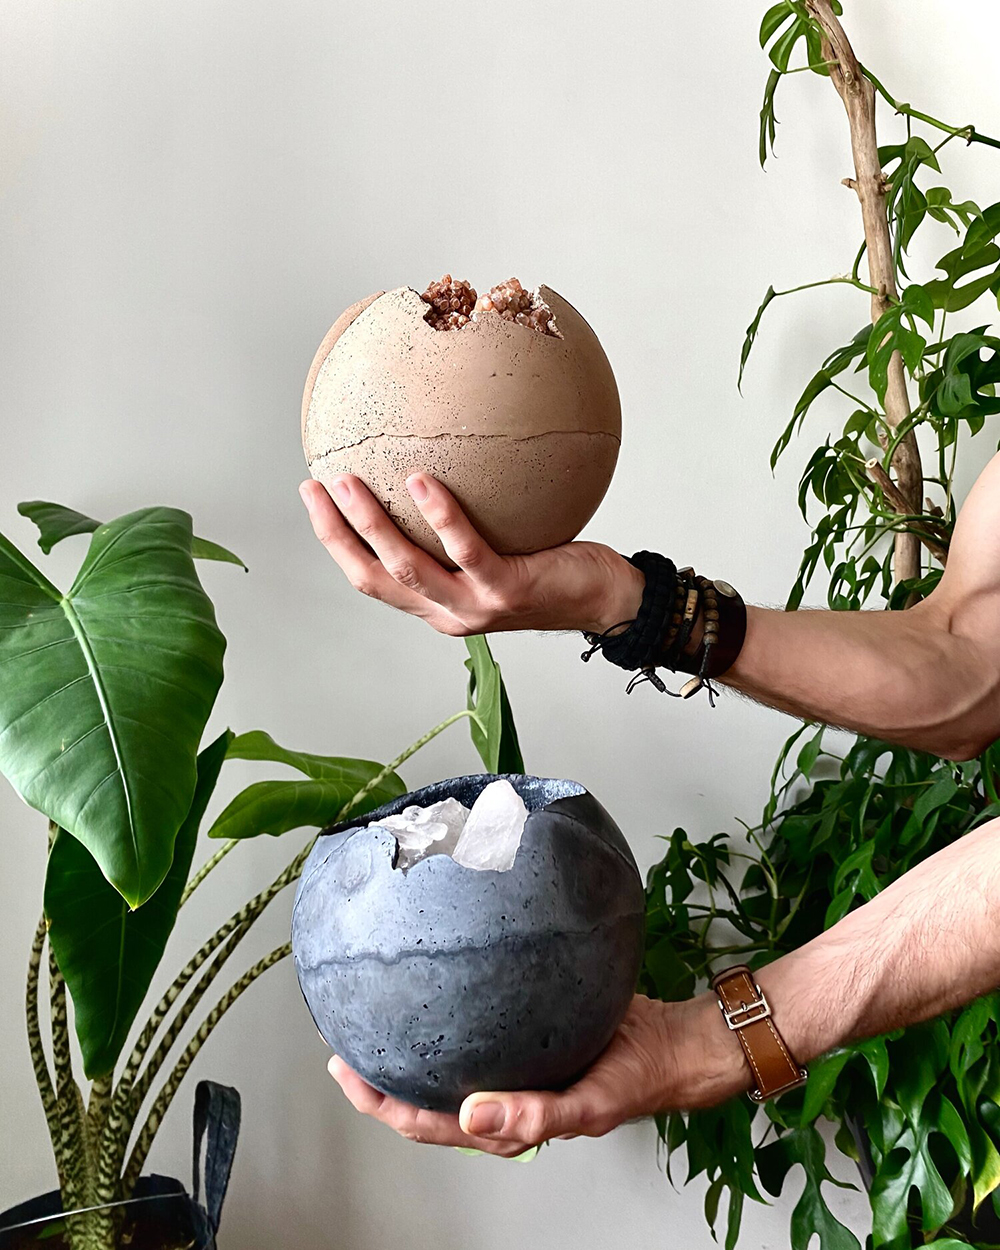 Dirty Roots x Urban Jungle Bloggers limited edition plant spheres